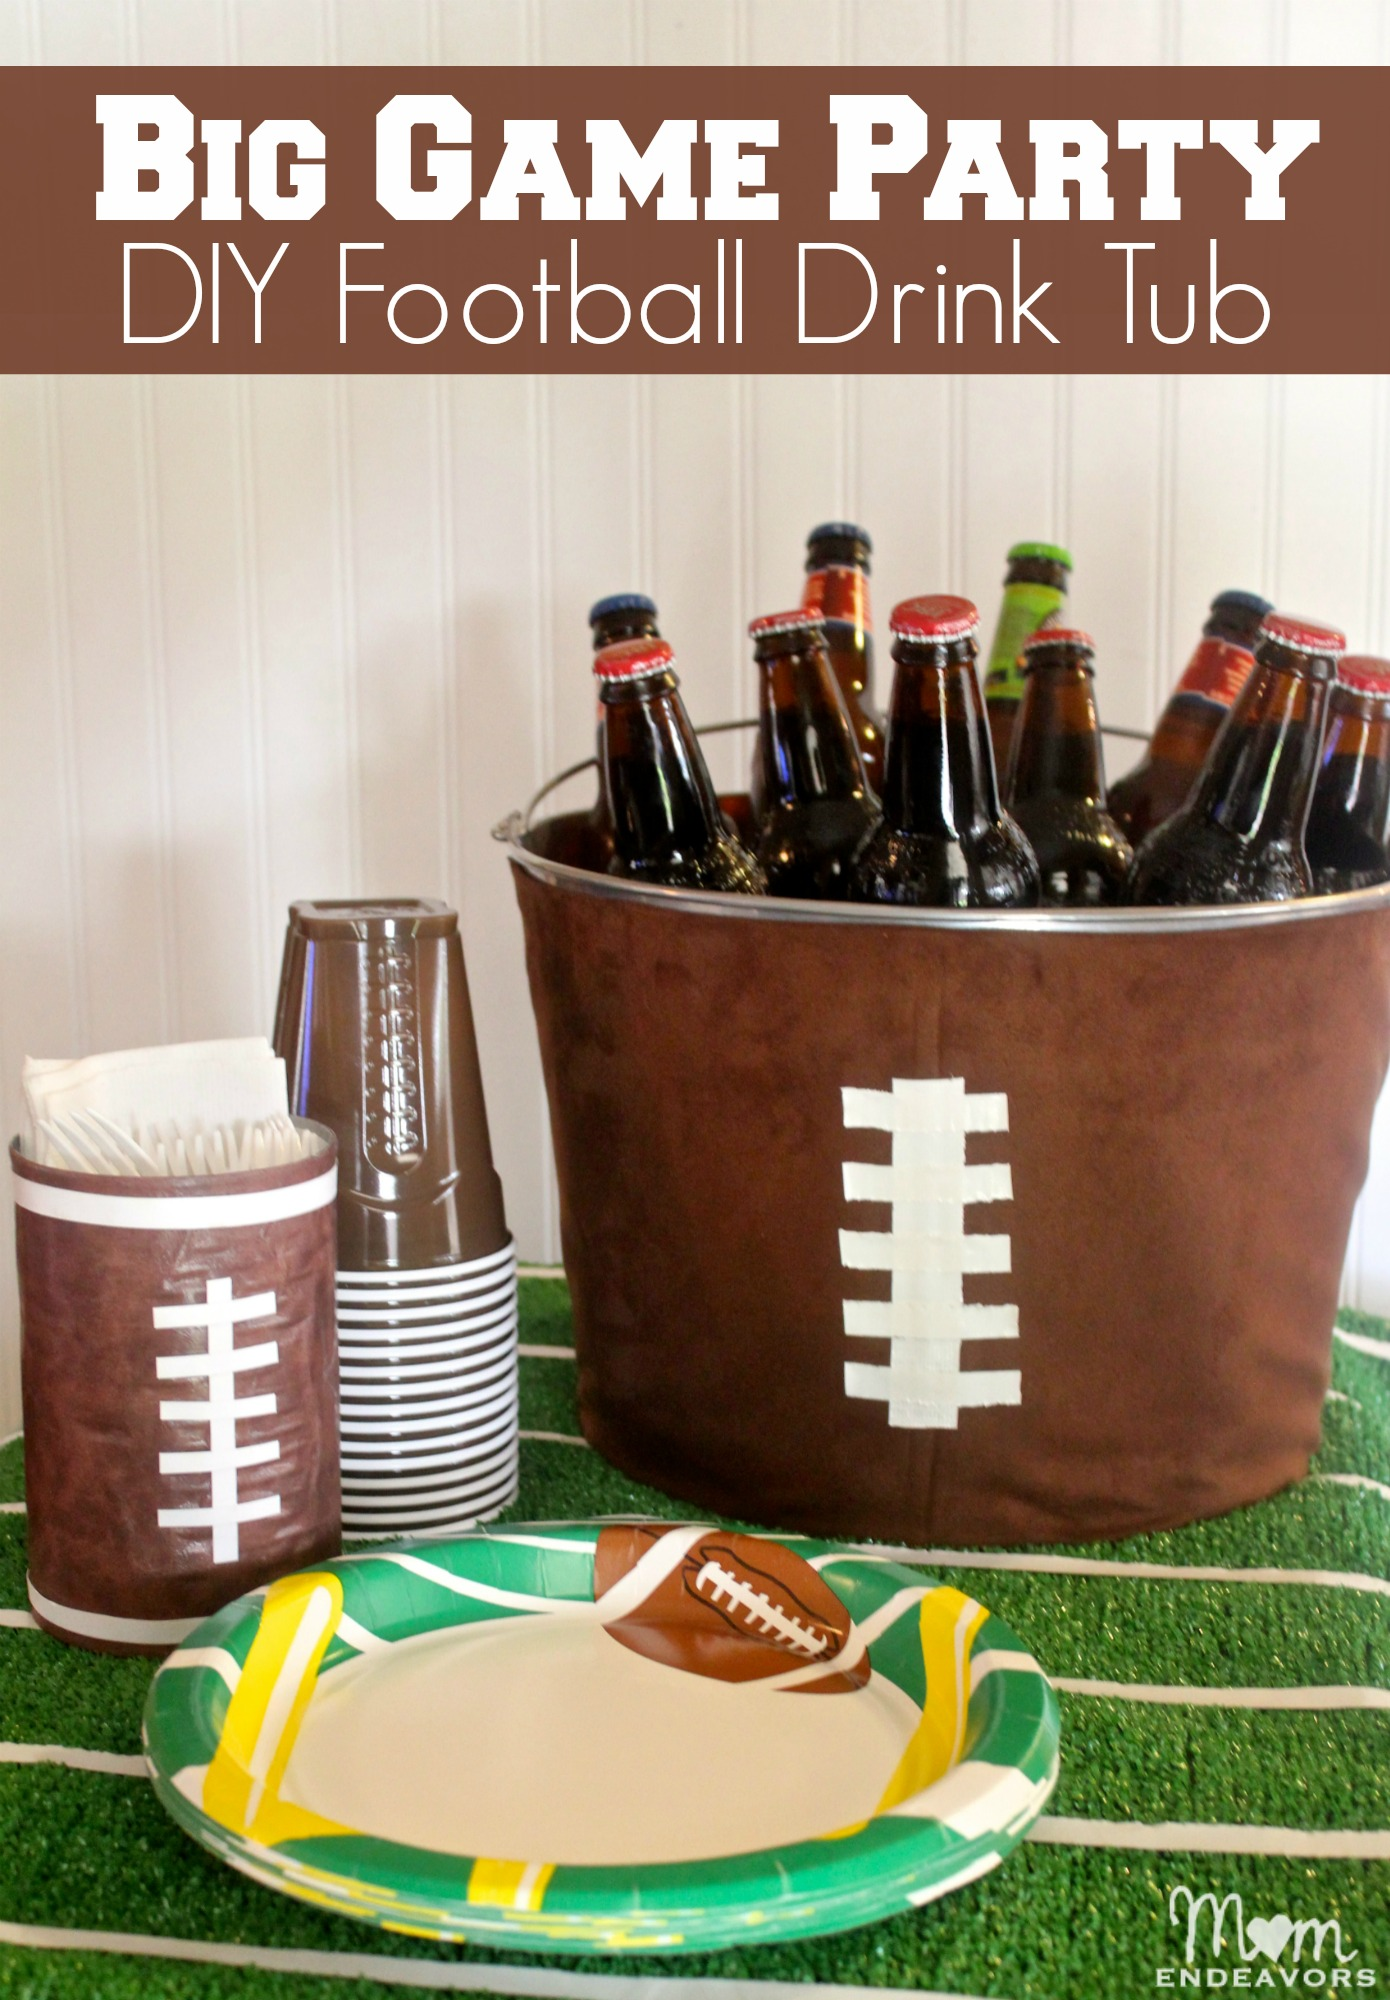 Football Party Decor Diy Football Drink Tub